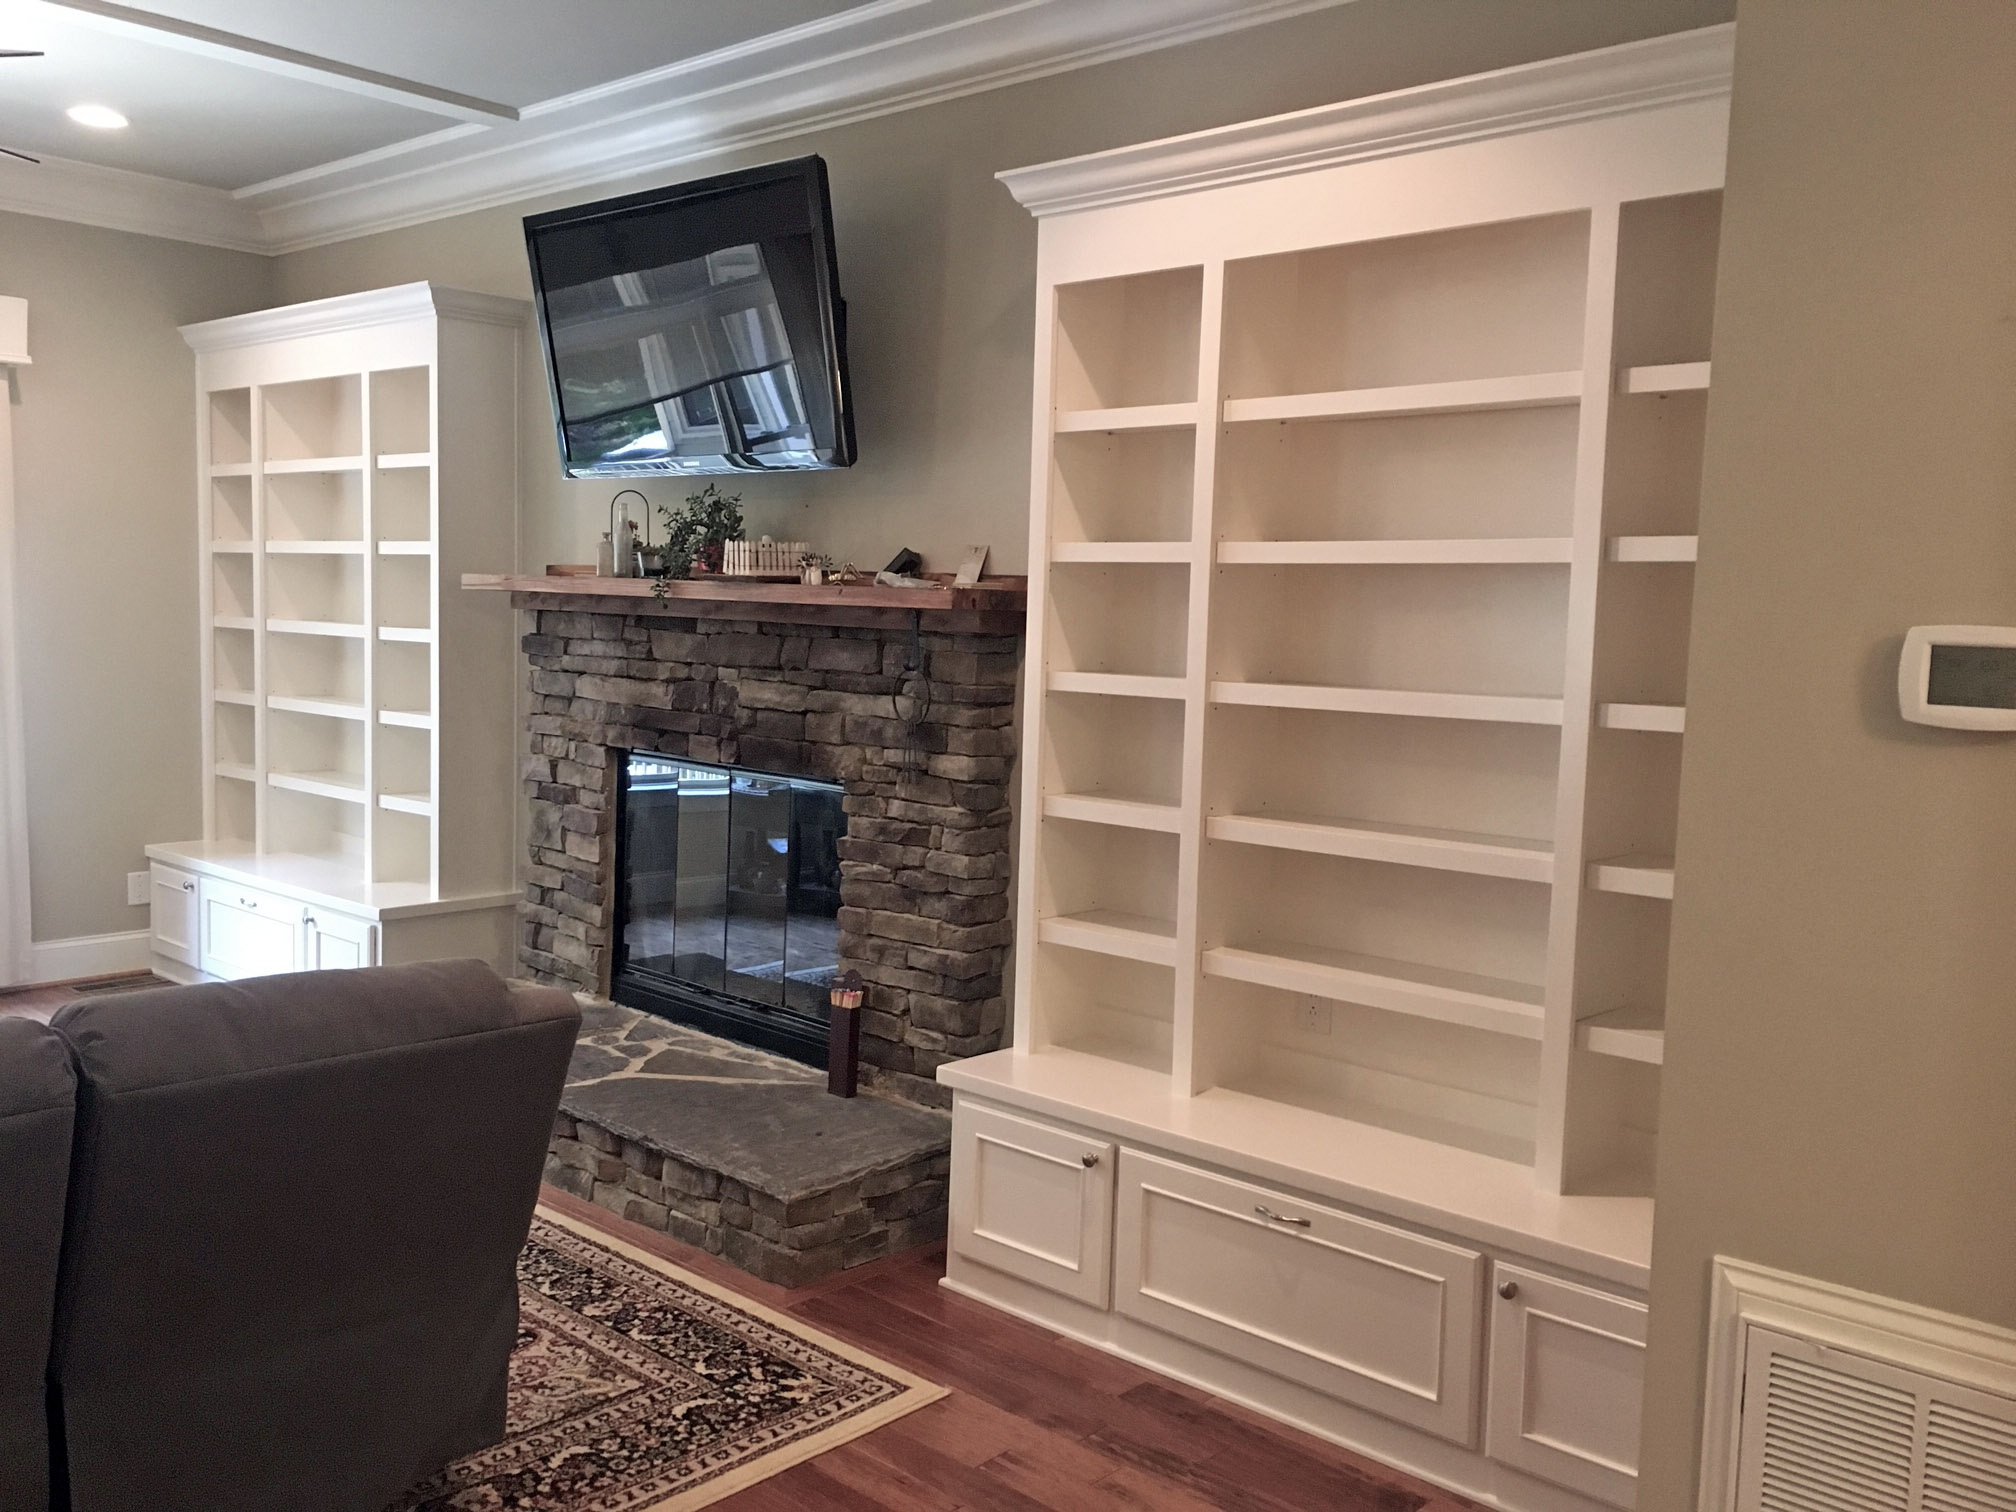 Fireplace Built-In with Adjustable Shelves, Drawers with Applied Panel Detail, and Crown